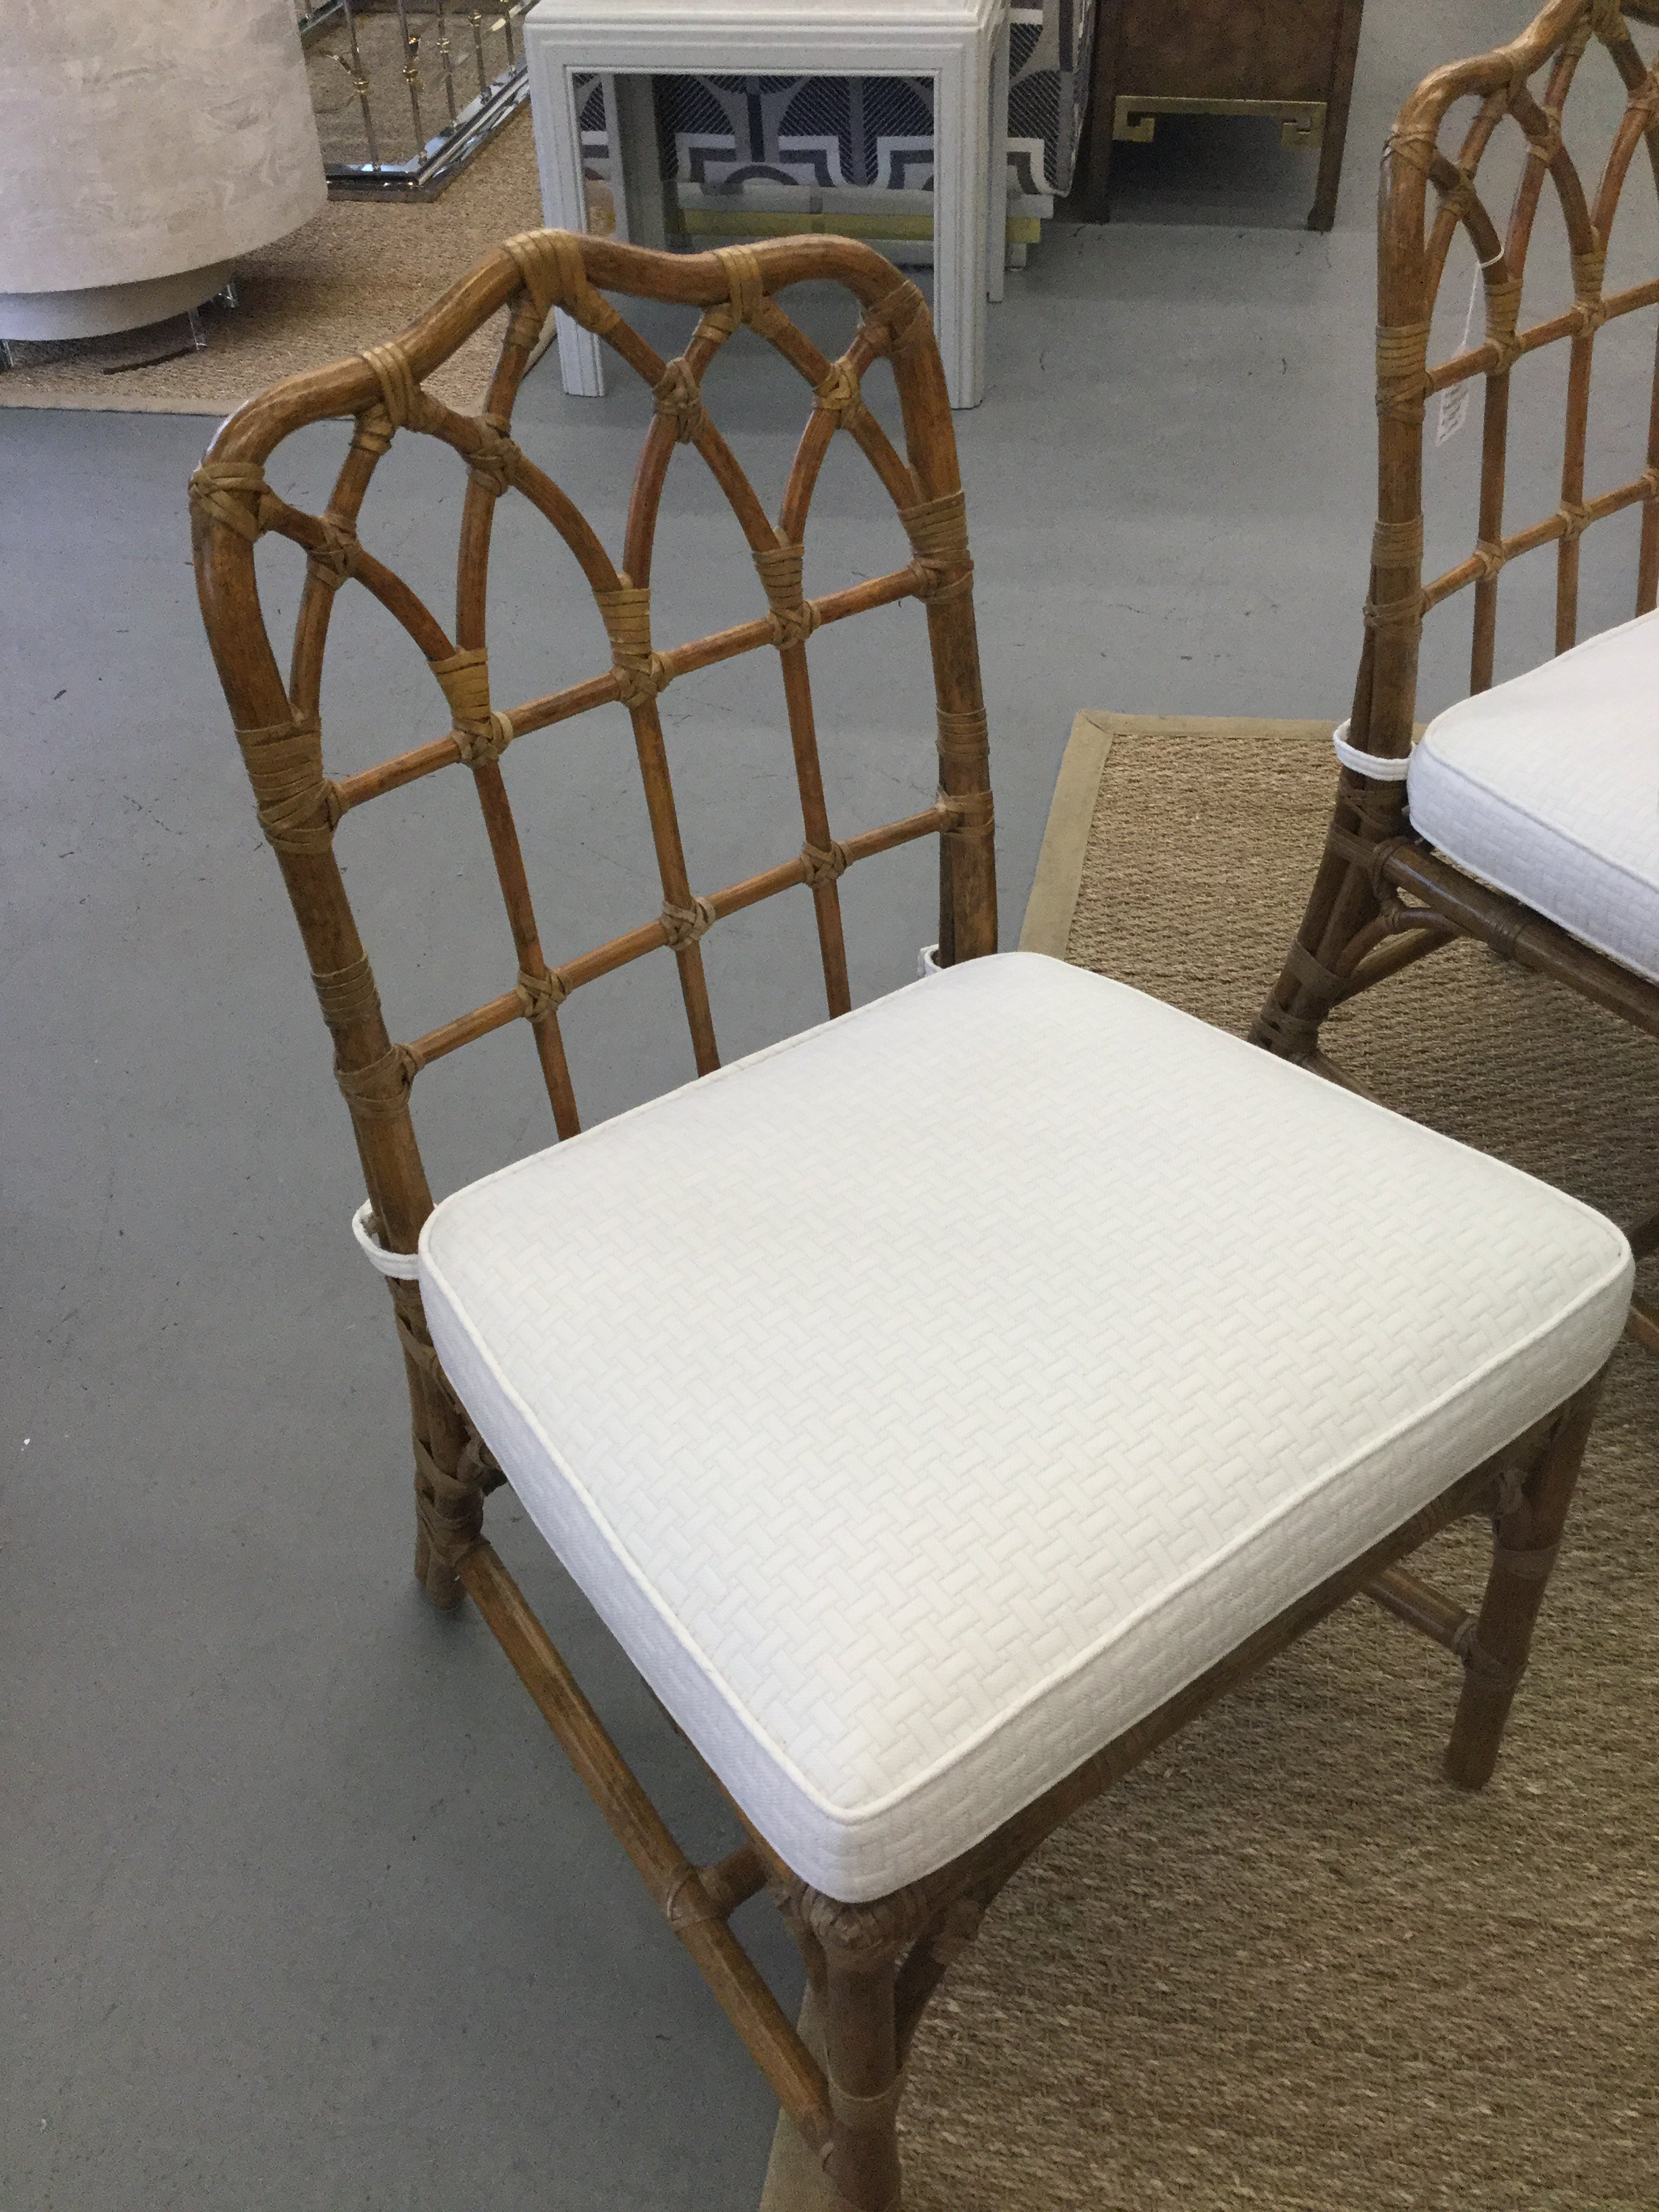 at style chairs chair the pair as decoration of chinoiserie theydesign net bamboo traditional pavilion within brighton